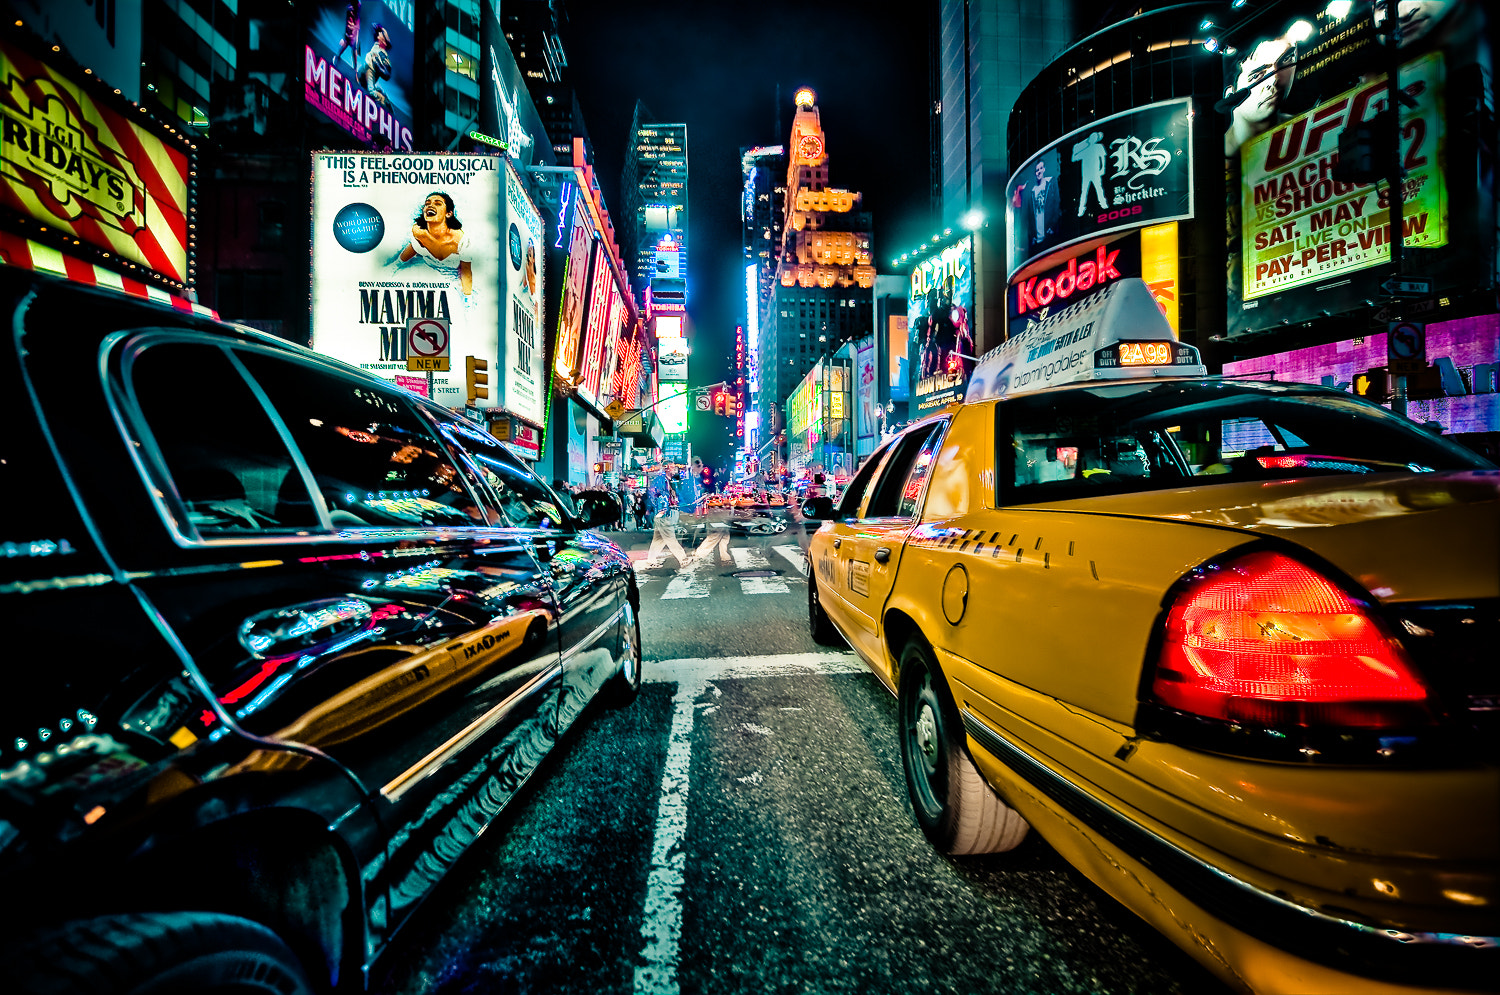 Photograph In the middle of traffic, Times Square by Guillaume Gaudet on 500px